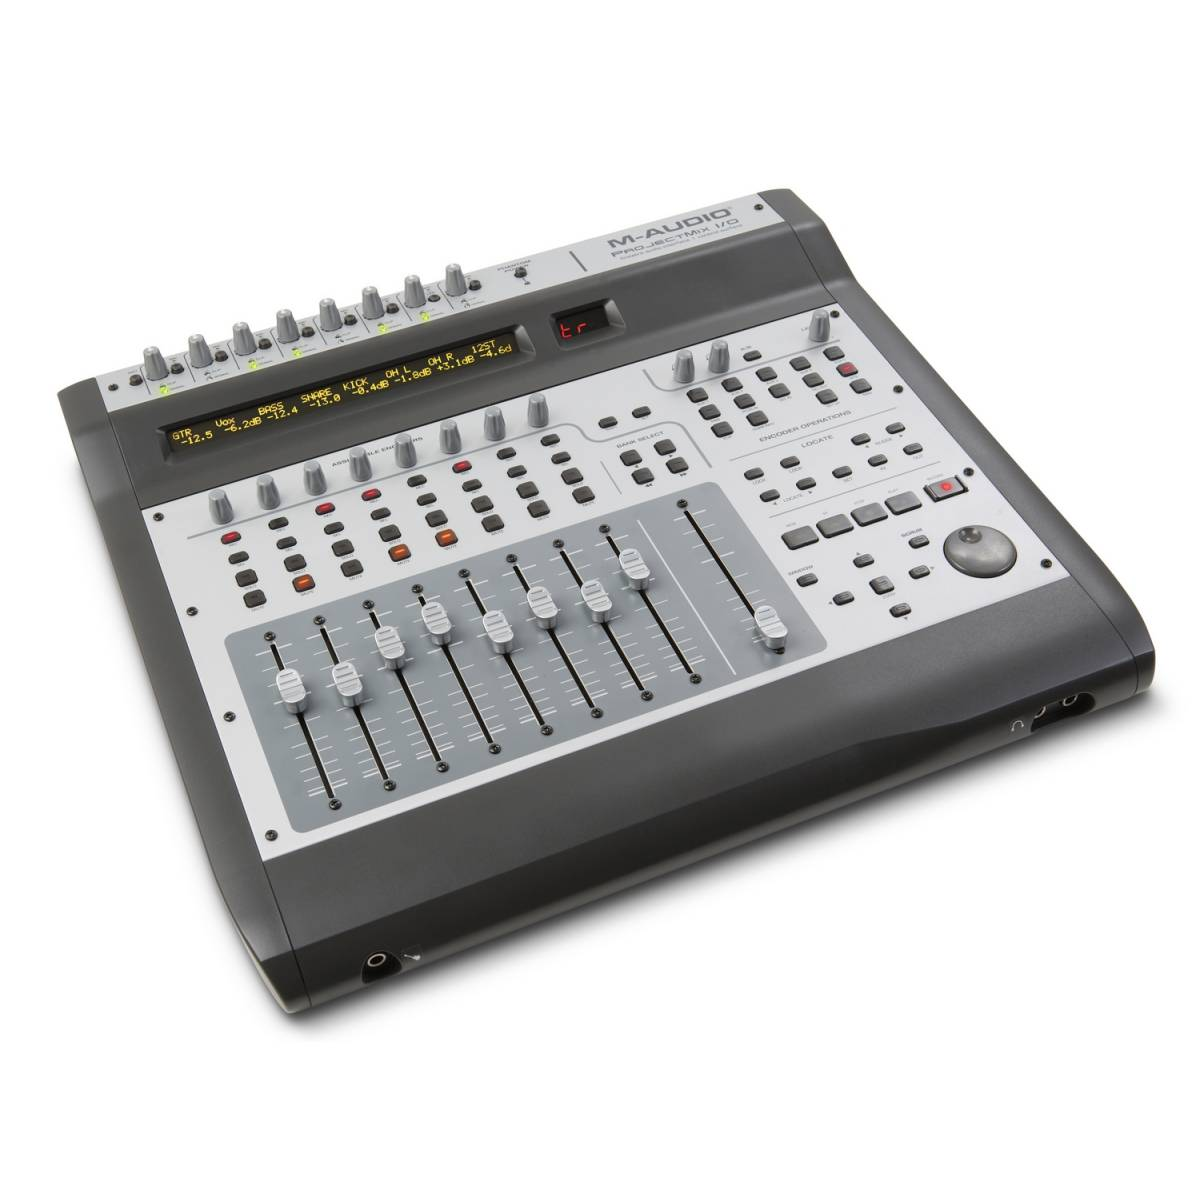 Audio control surface